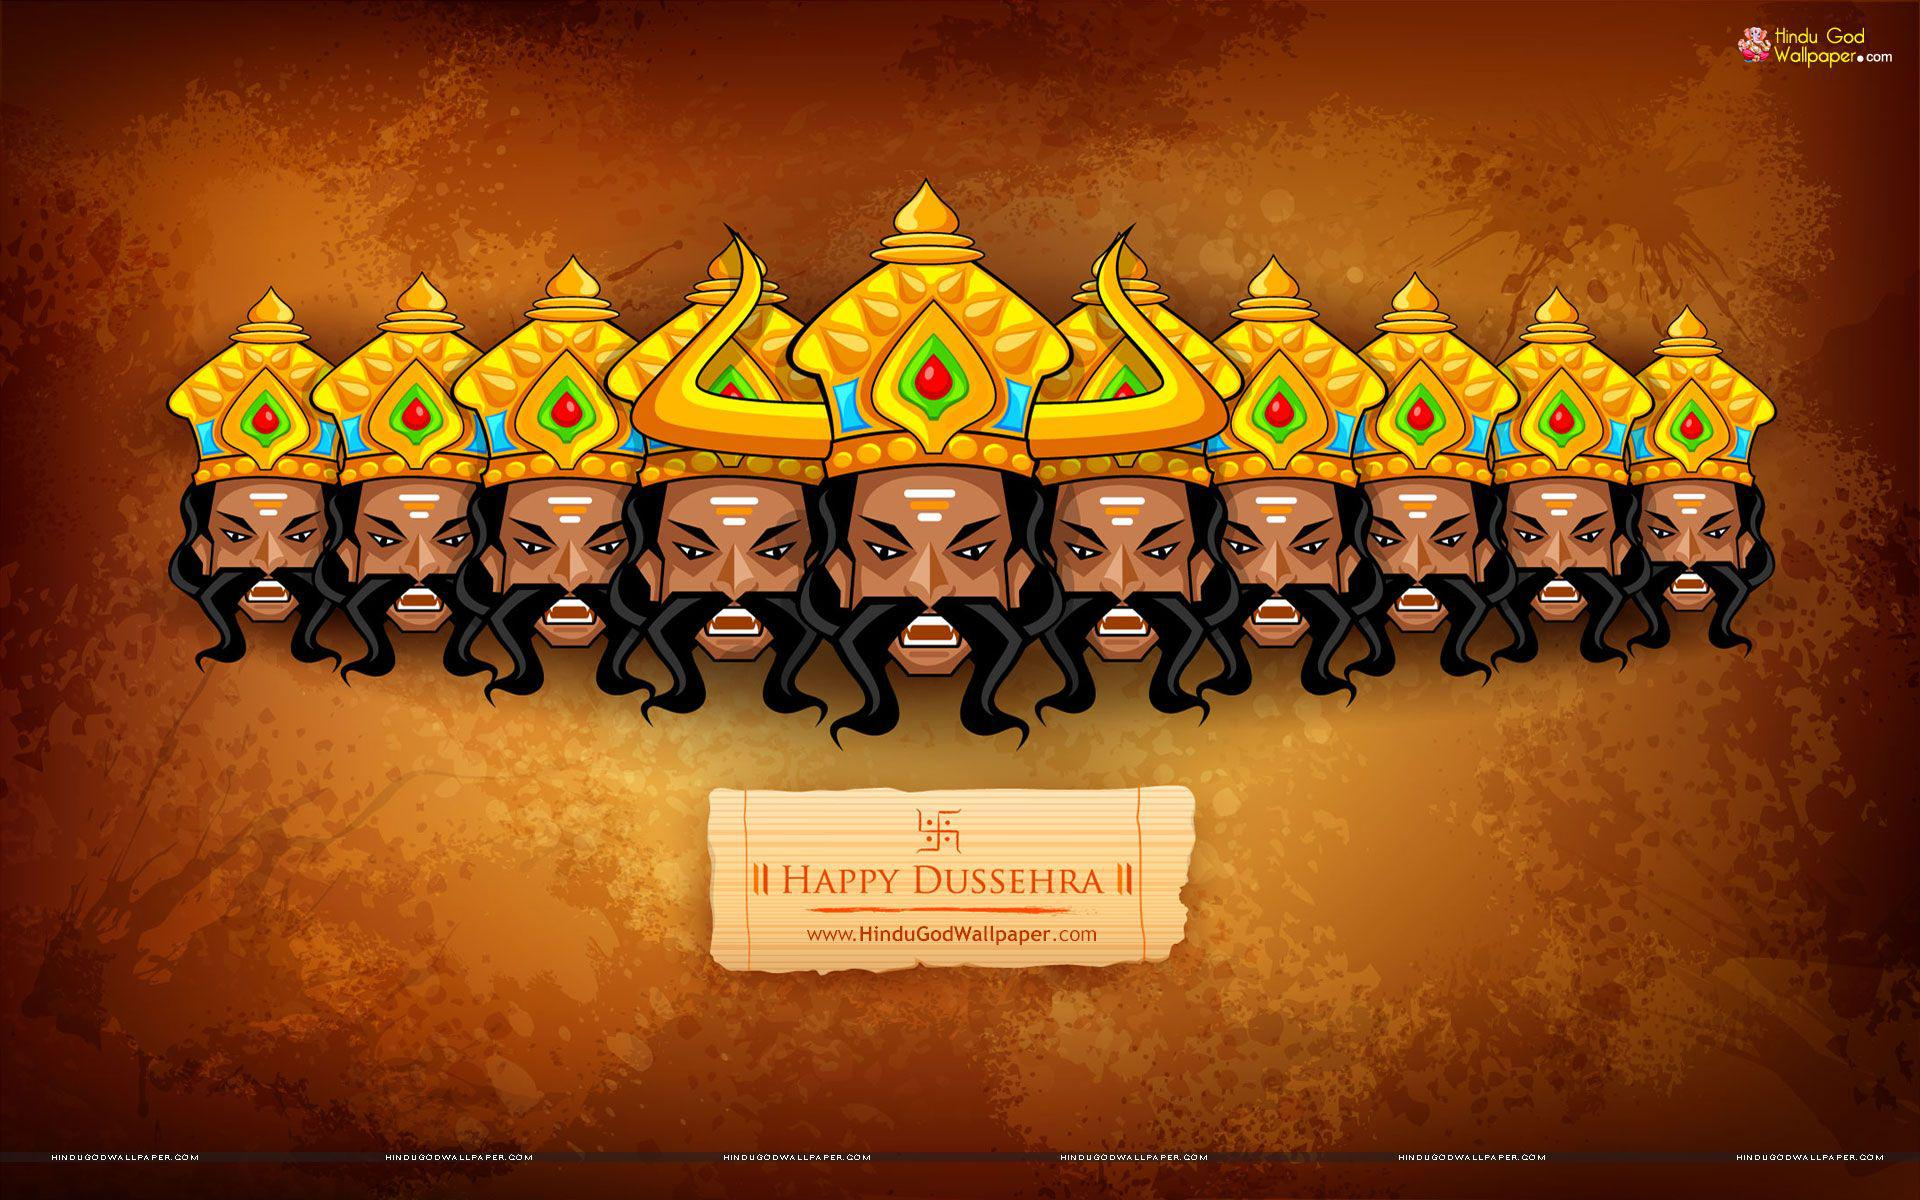 Happy Dussehra Images Download For Free